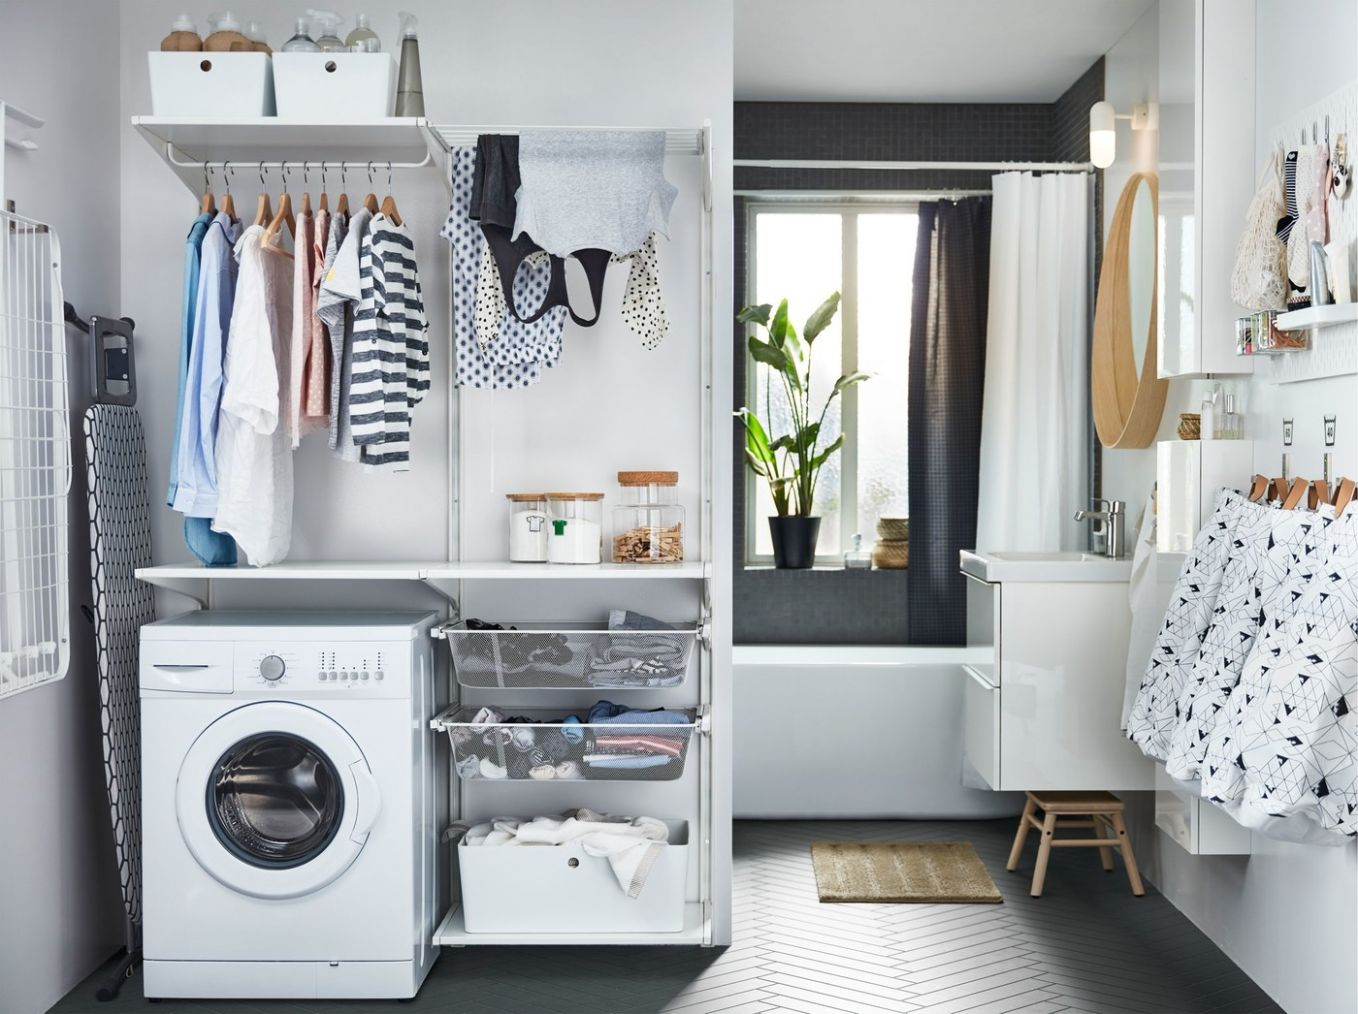 Easy and organised laundry routines - IKEA - laundry room ideas ikea